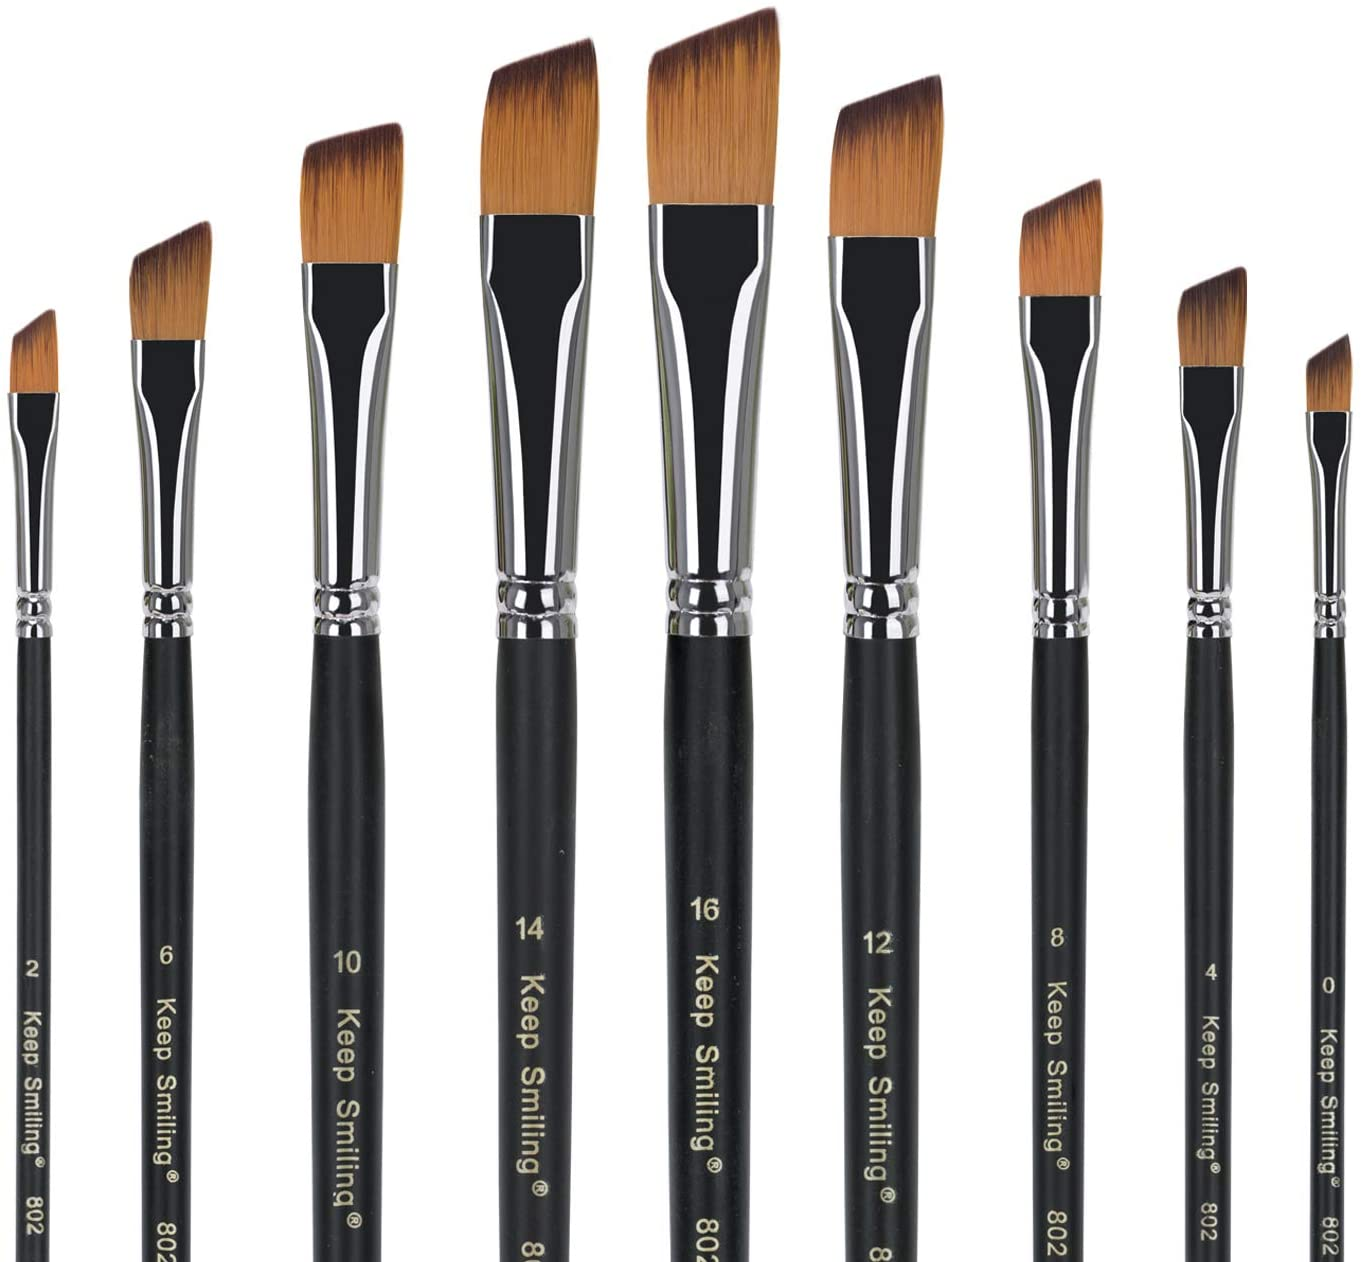 Paint Brush Set Artist Angled Brushes Made of Premium Nylon Hair for Acrylic Painting Watercolor Painting Oil Painting Perfect for Beginners Artists and Children in Different Size (9 Pieces Nylon)